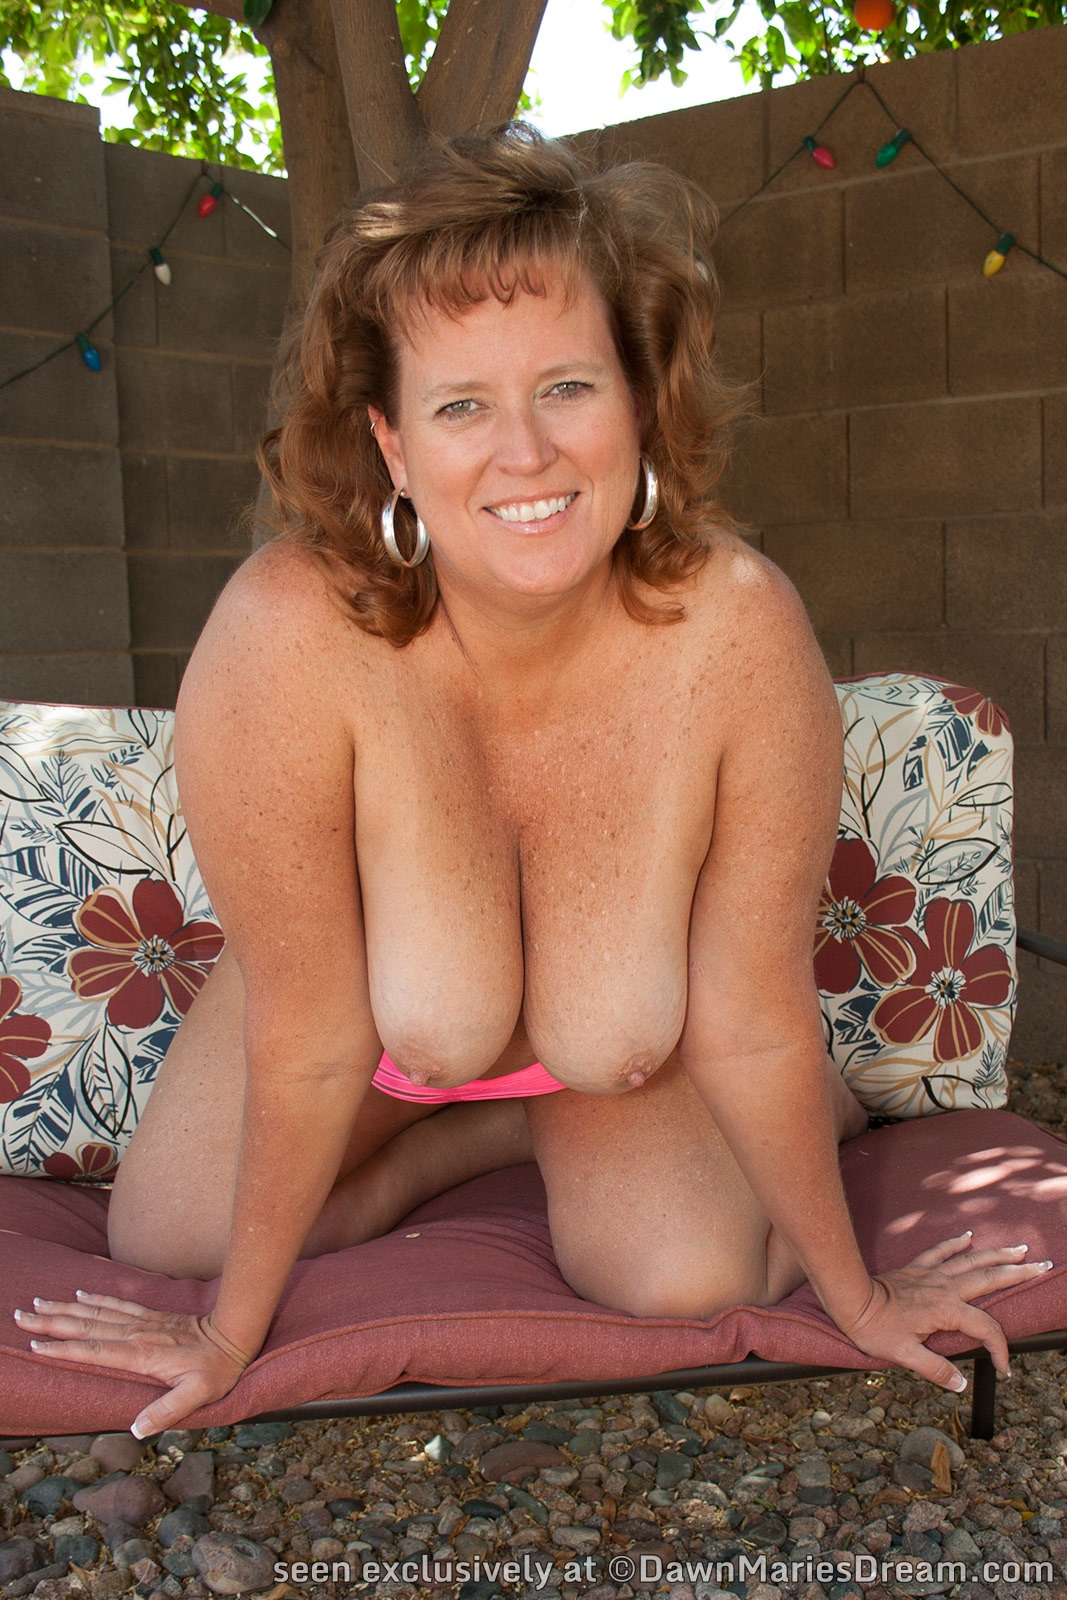 There's wrestler dawn marie nude words... super